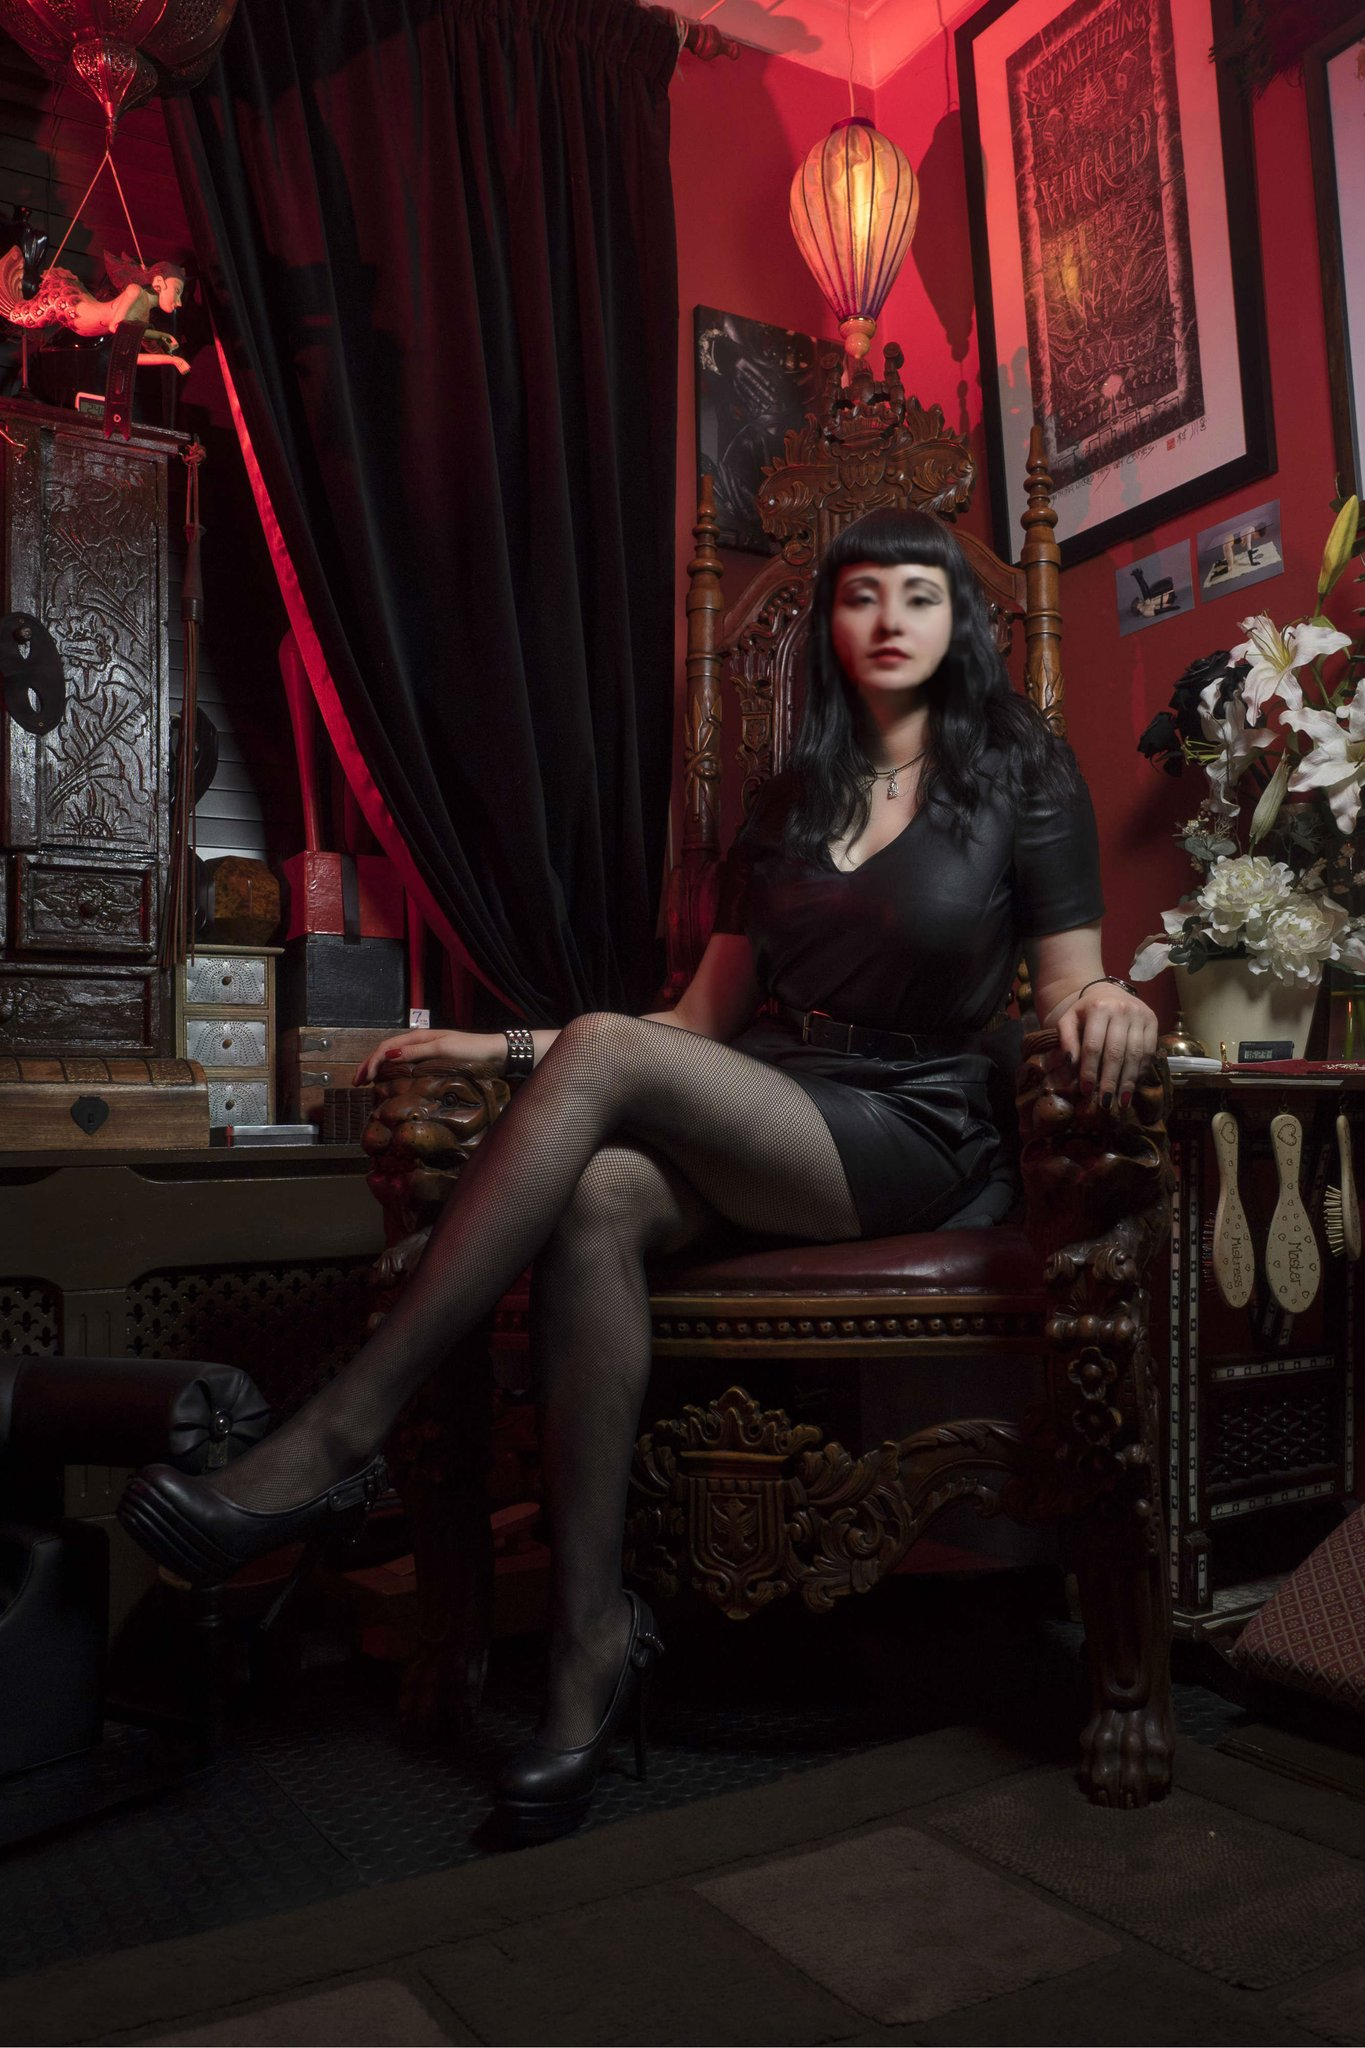 london-mistresses-mistress-bettie-von-sade